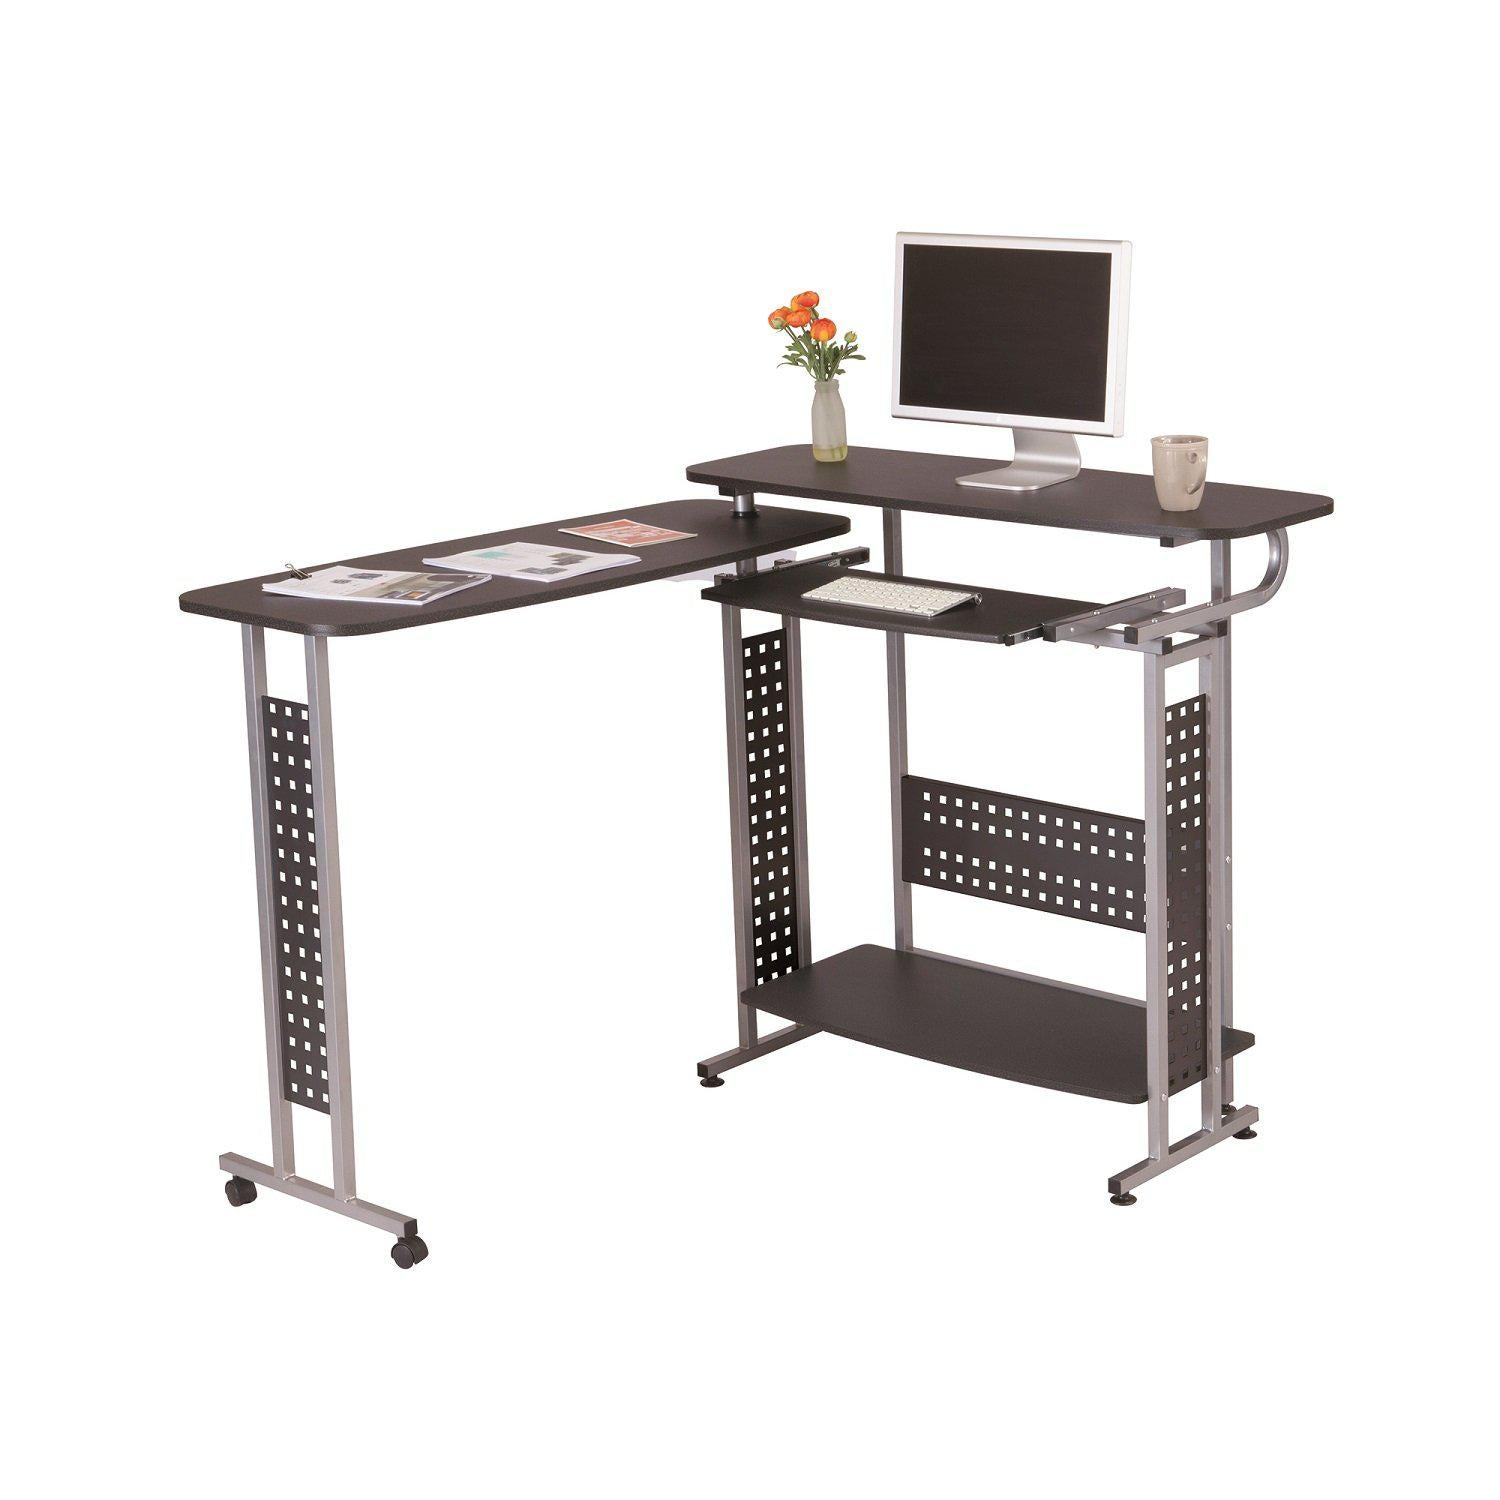 Scoot™ Standing-Height Desk with Rotating Work Surface